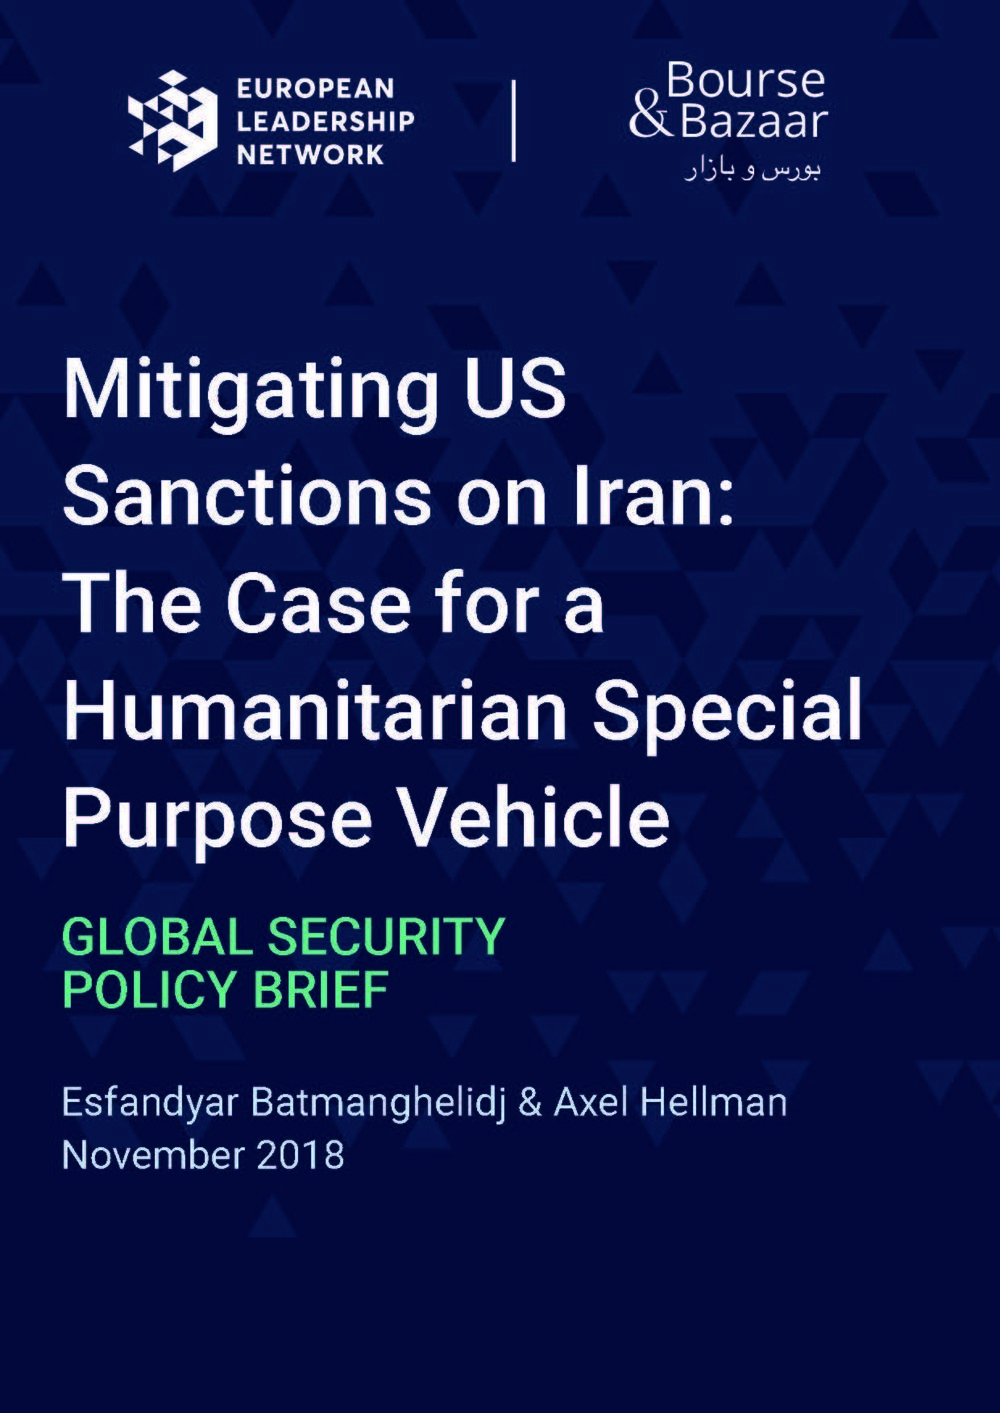 B&B_ELB_HSPV_Iran_Policy_Brief_RS_Page_01.jpg